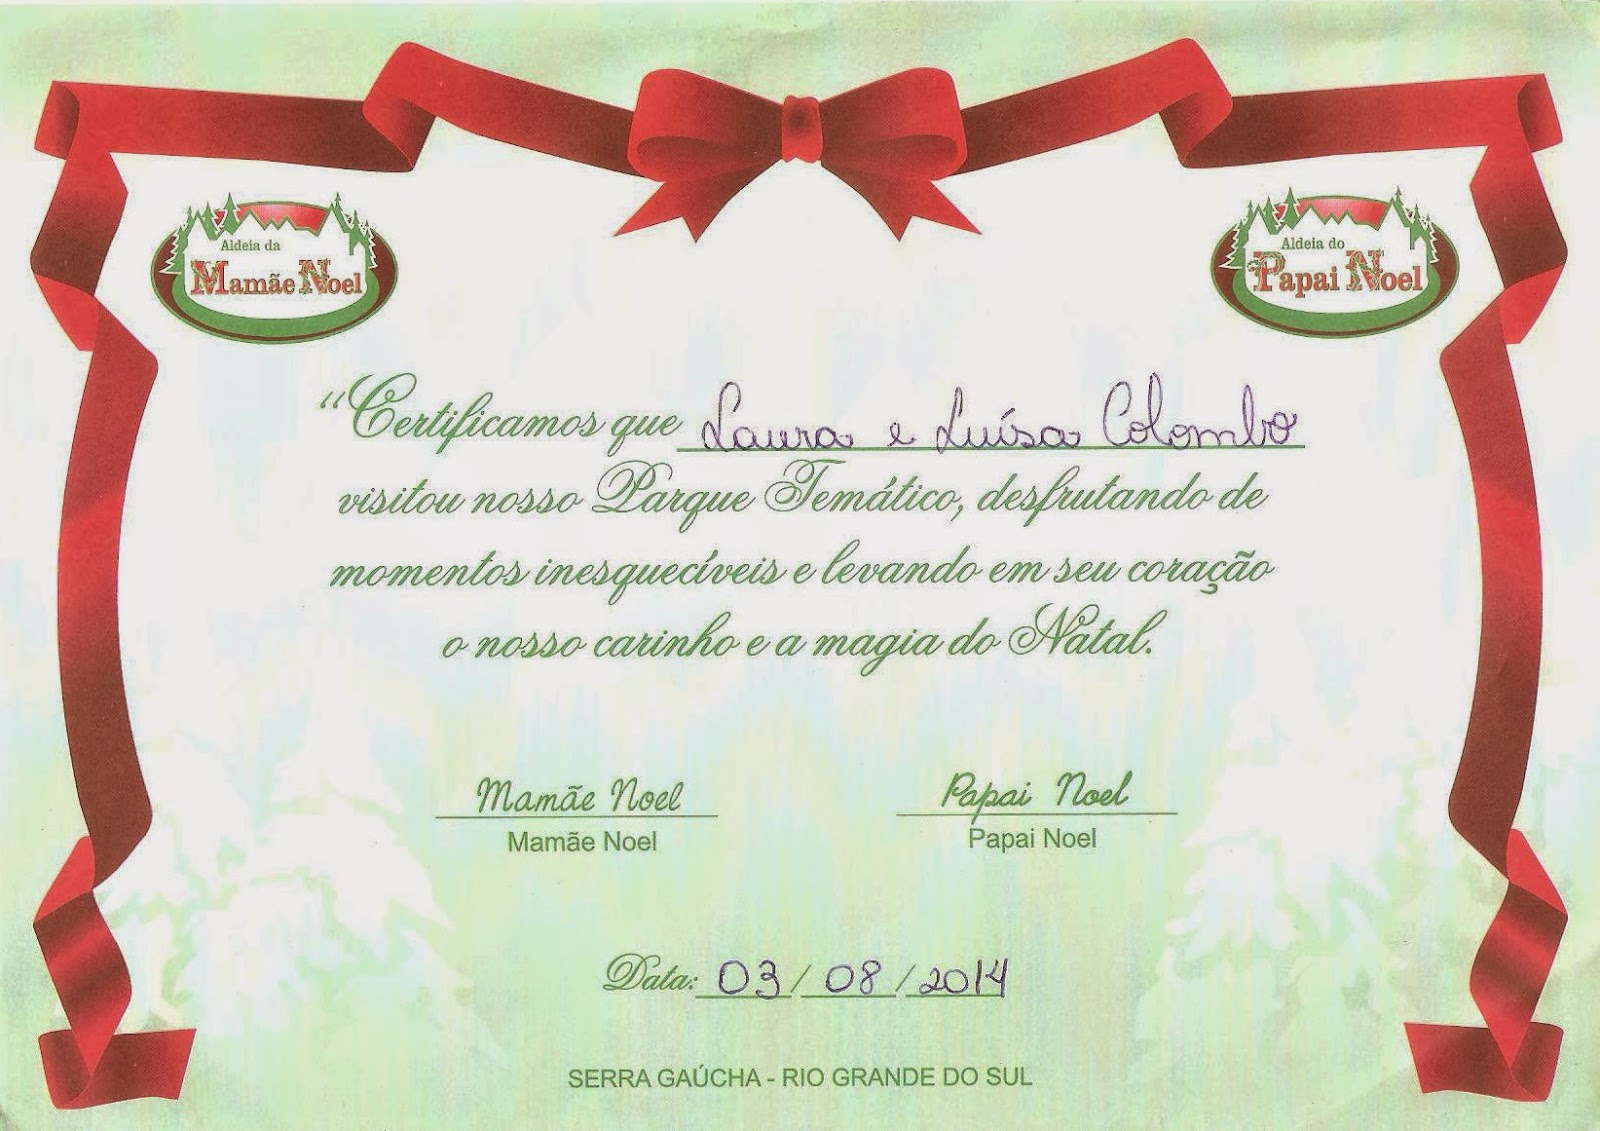 Certificado da Aldeia do Papai Noel - Gramado - RS